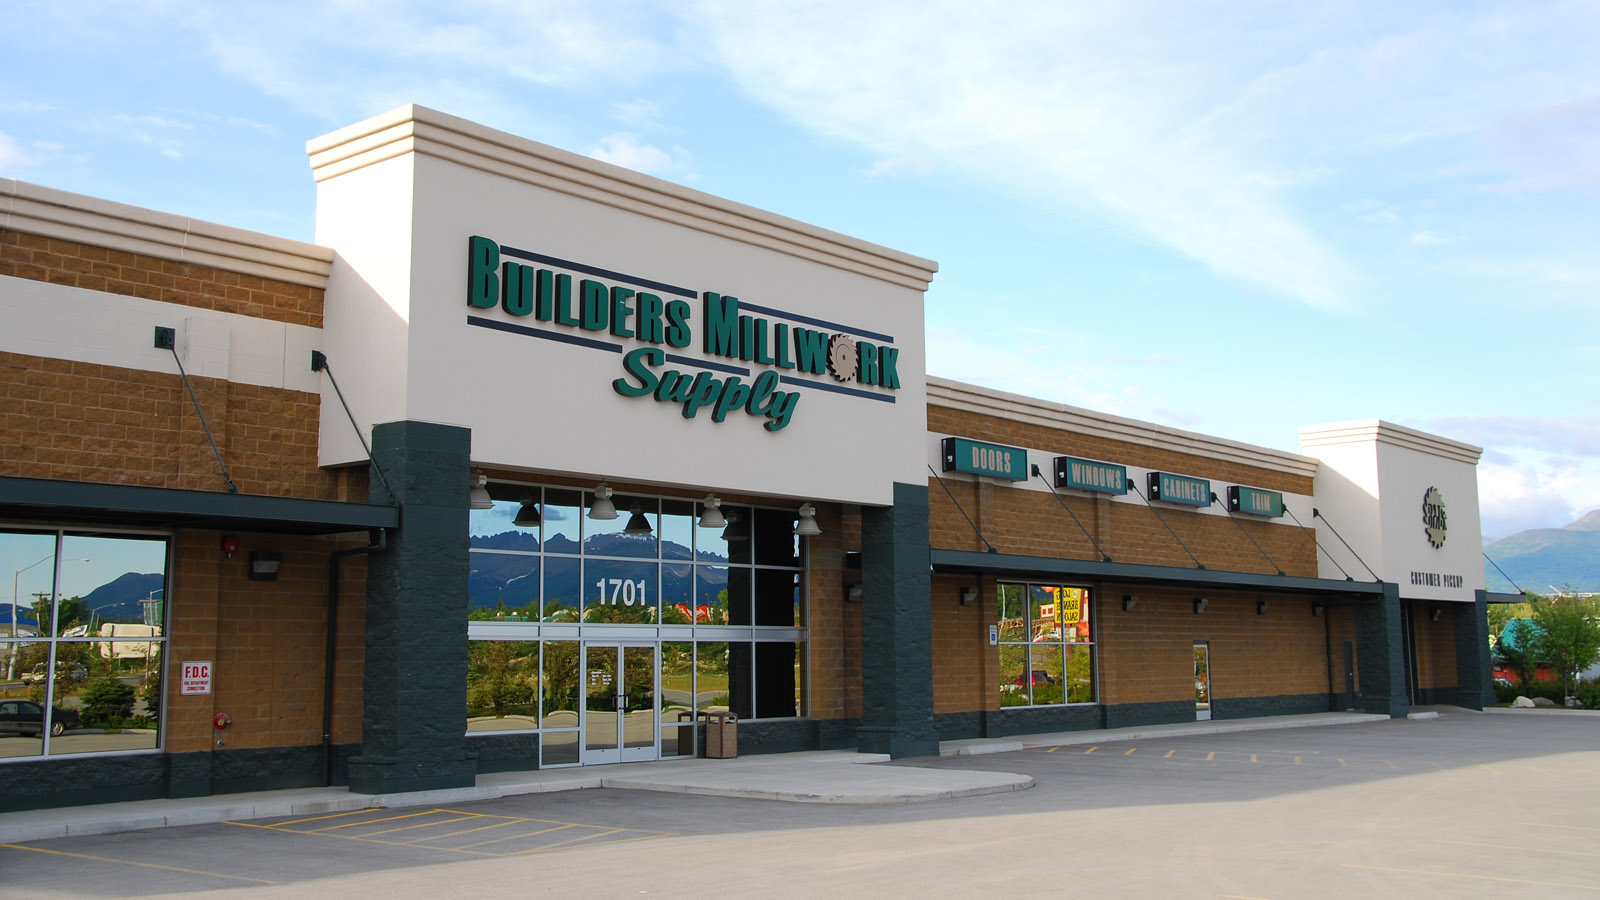 Builders Millwork Supply in Anchorage Alaska